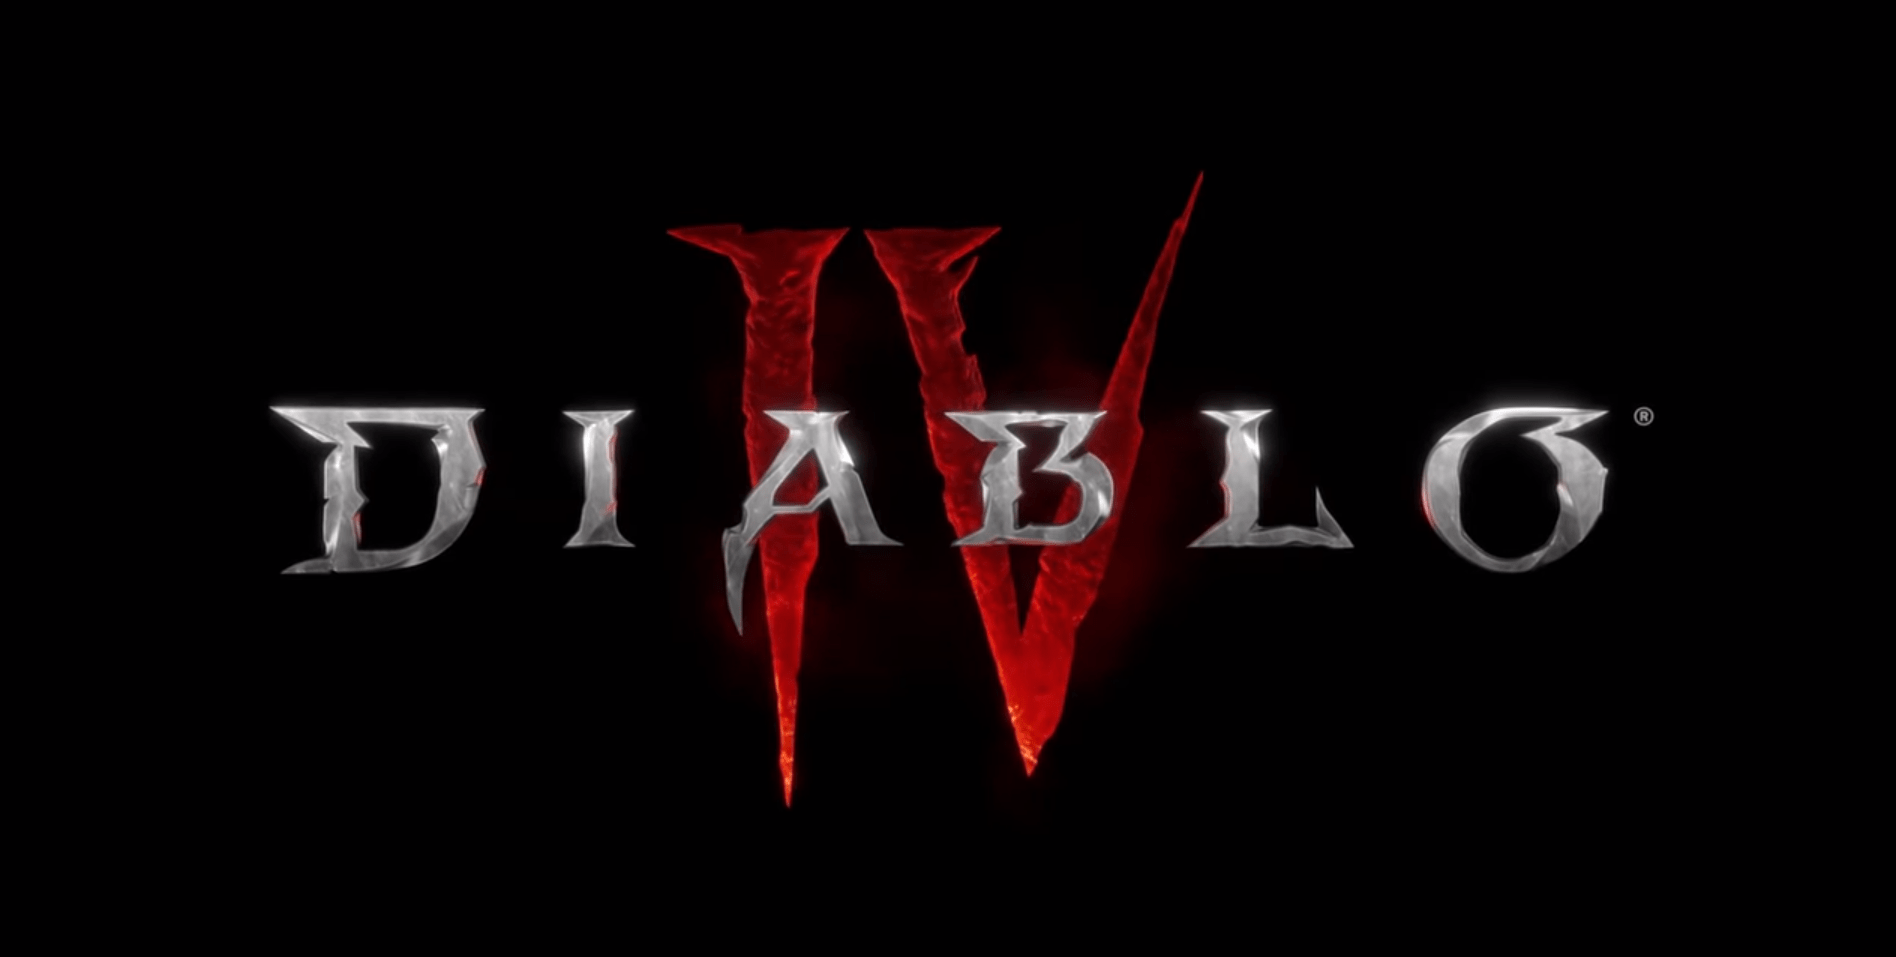 Diablo IV To Include In-Game Cosmetic Microtransactions, According to Lead Game Designer Joe Shely